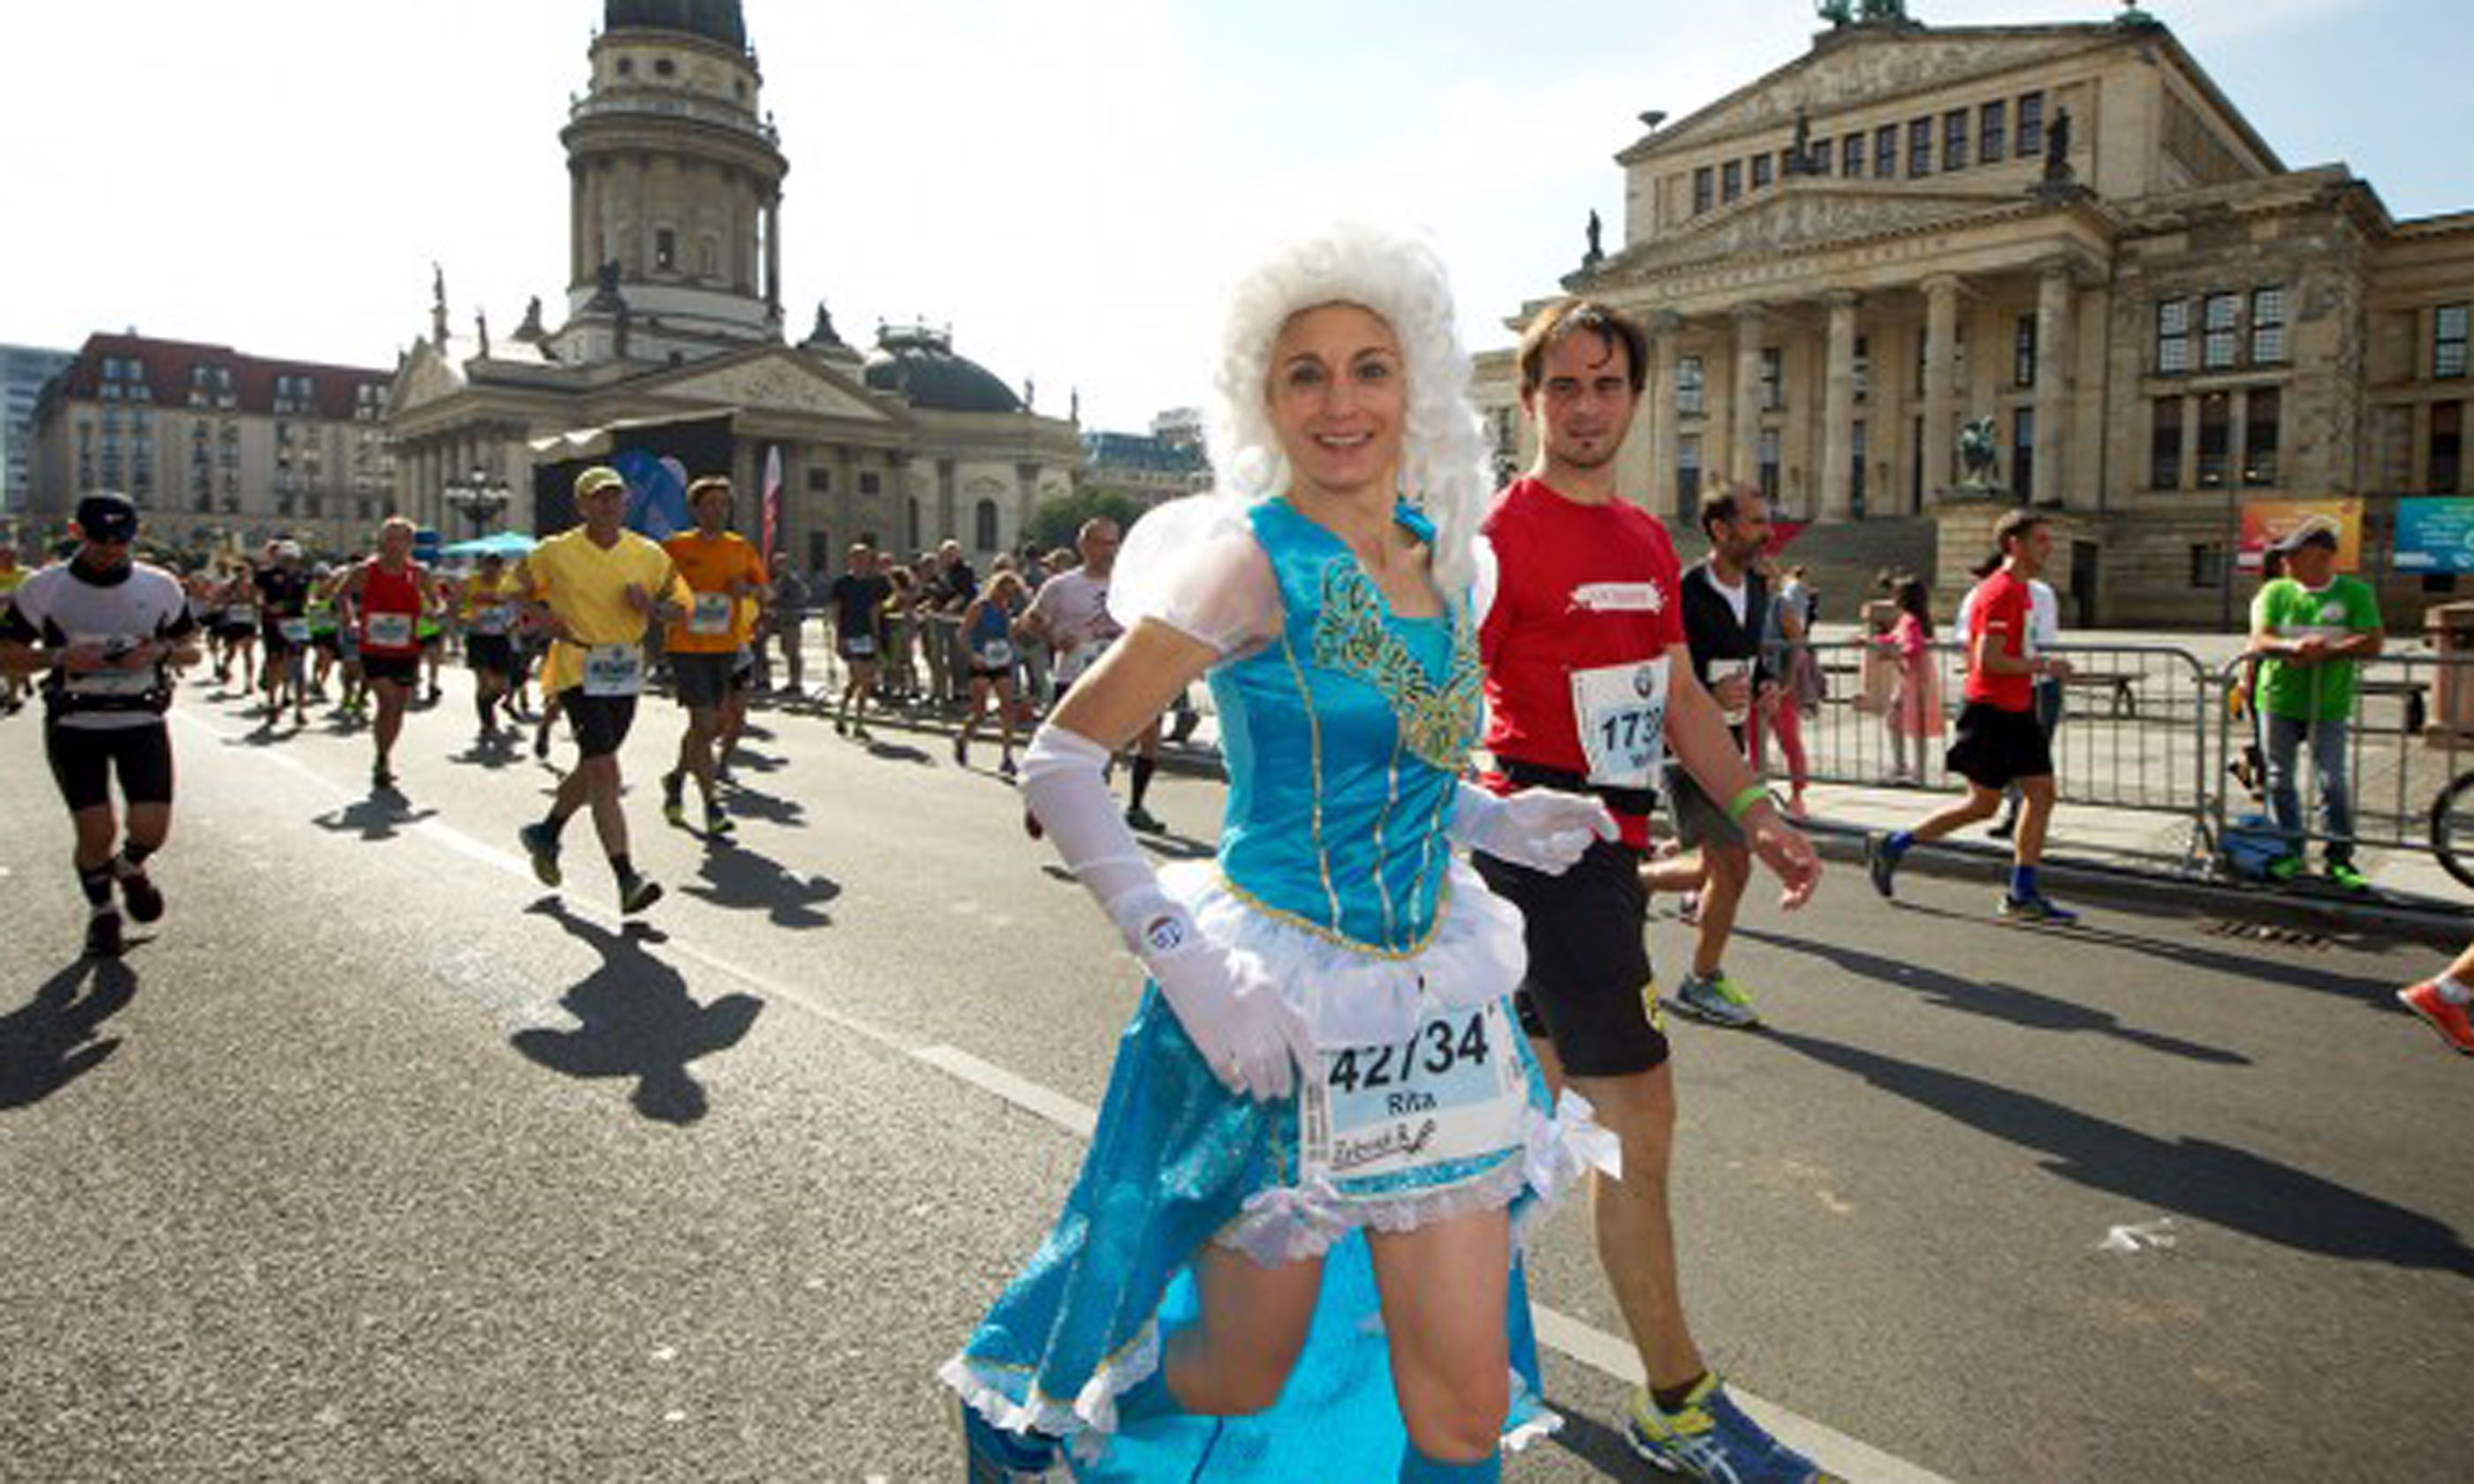 Fräulein on the course (BMW Berlin Marathon/SCC Events)